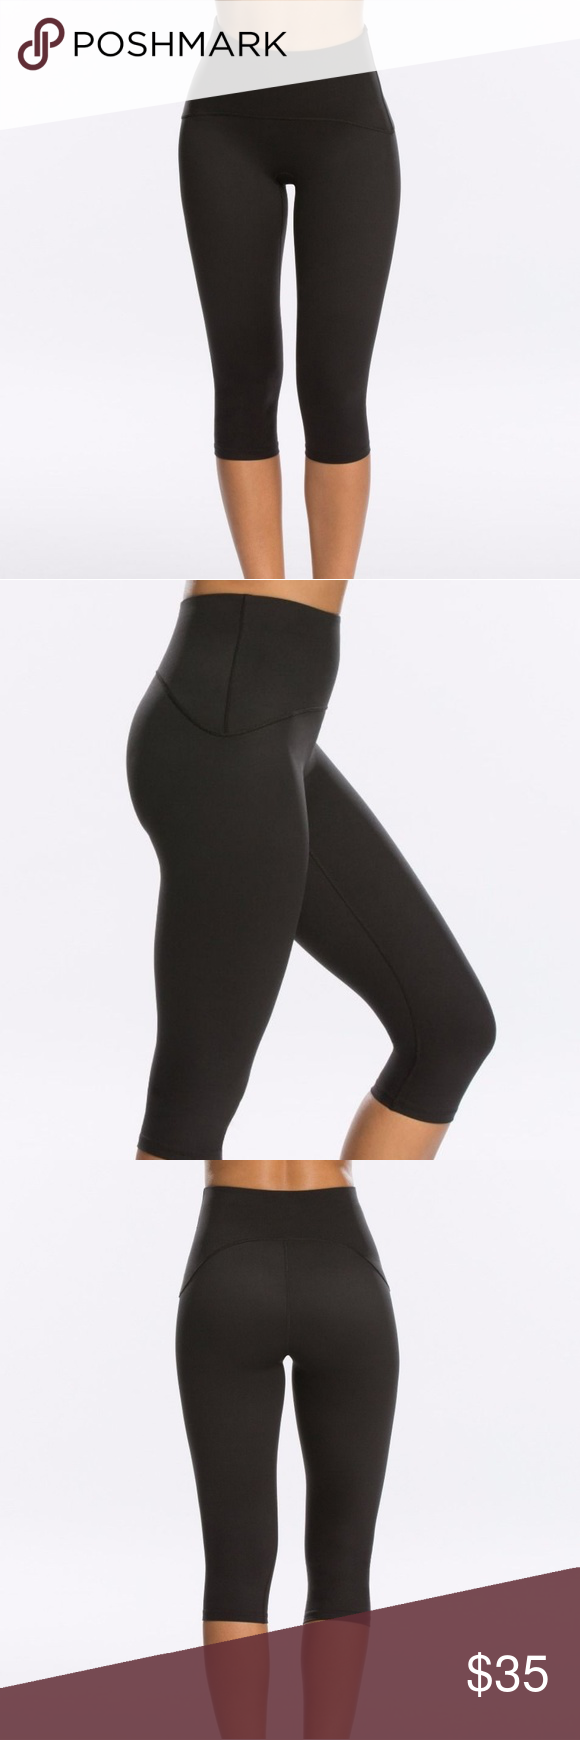 7ab0749f68 SPANX Active Compression Knee Pant Size L Black Active Leggings won't quit.  These sculpting active knee leggings lift your backside and flatter your  bod ...